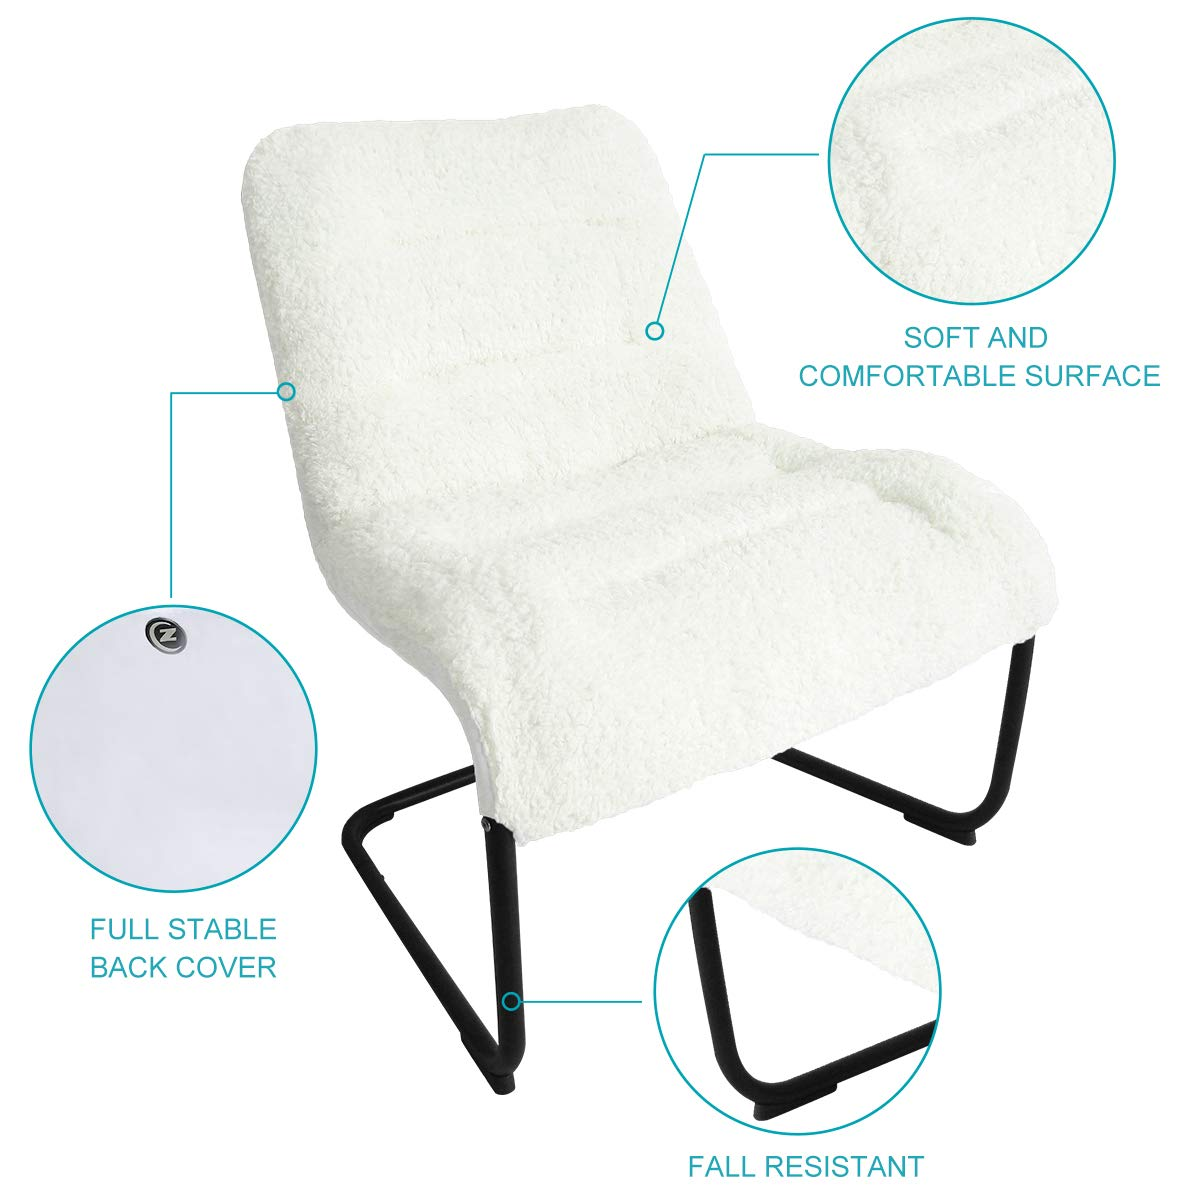 Zenree Comfy Dorm Chairs   Padded Folding Bedroom Reading Leisure/Lounge  Chair   Sherpa Seat For Living Room, Dorm, Teenu0027s Den, White